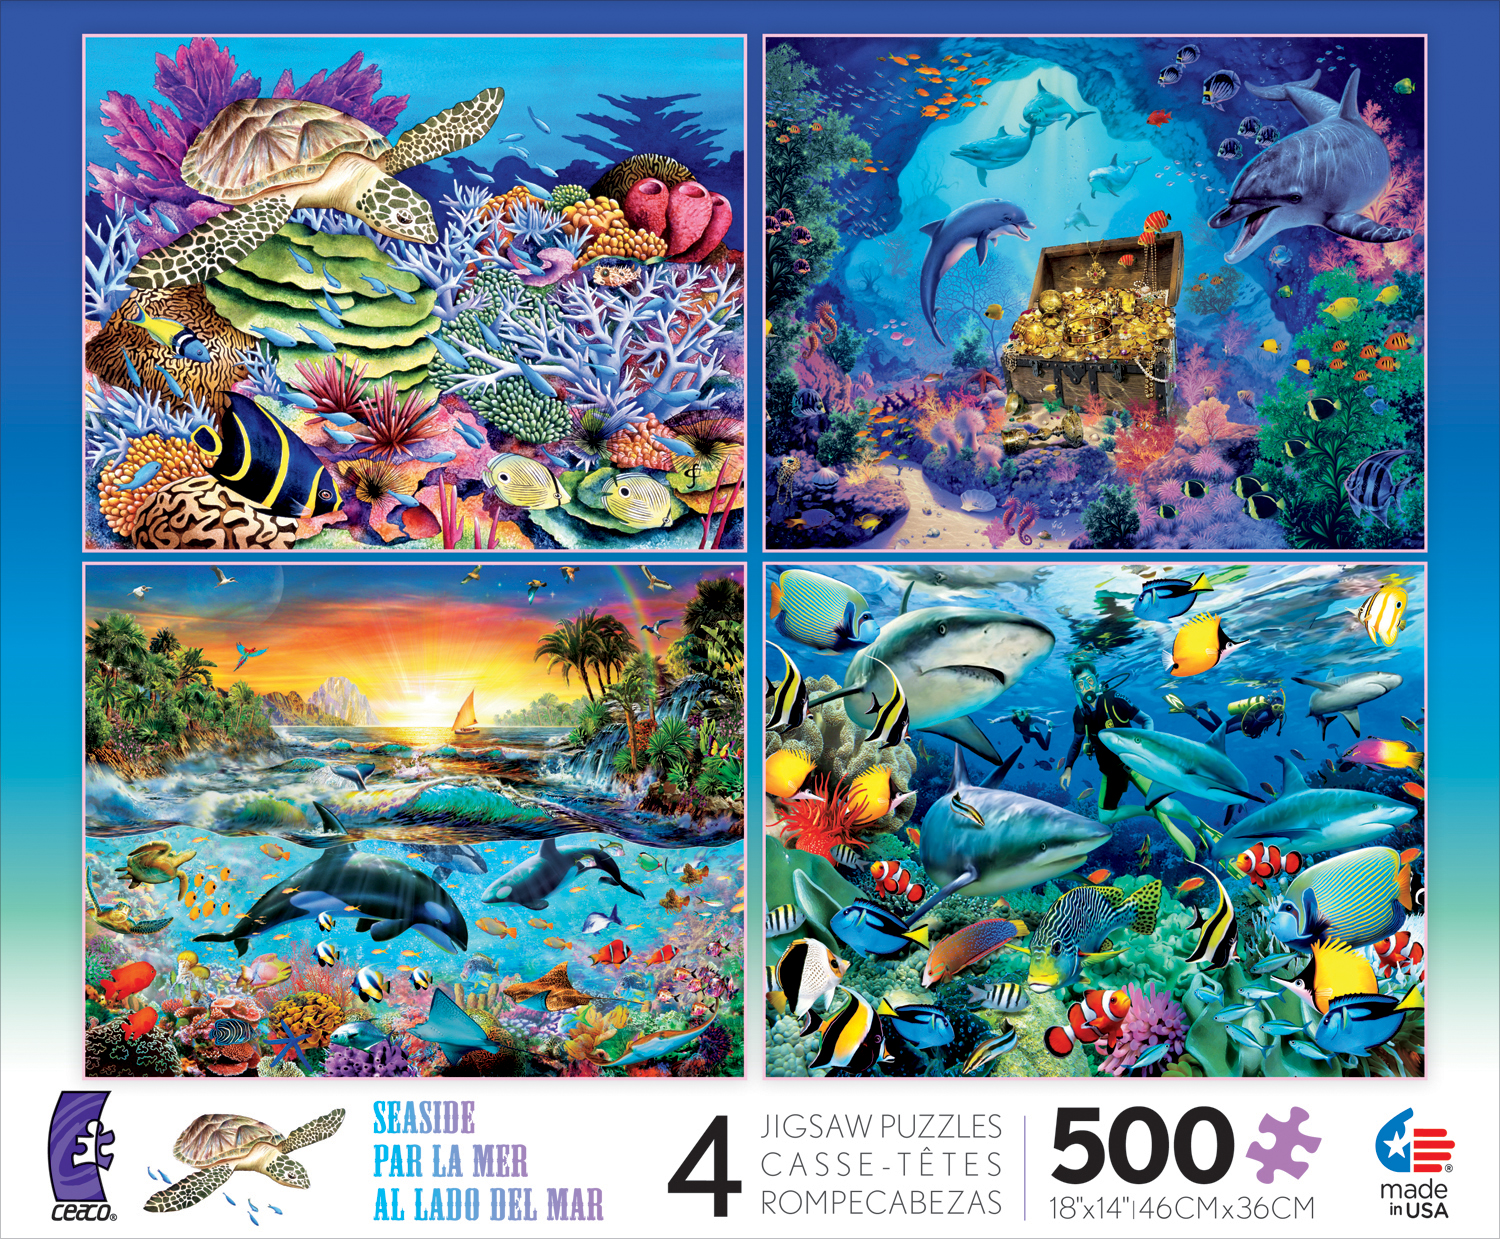 Seaside 4-in-1 Pack III Under The Sea Jigsaw Puzzle